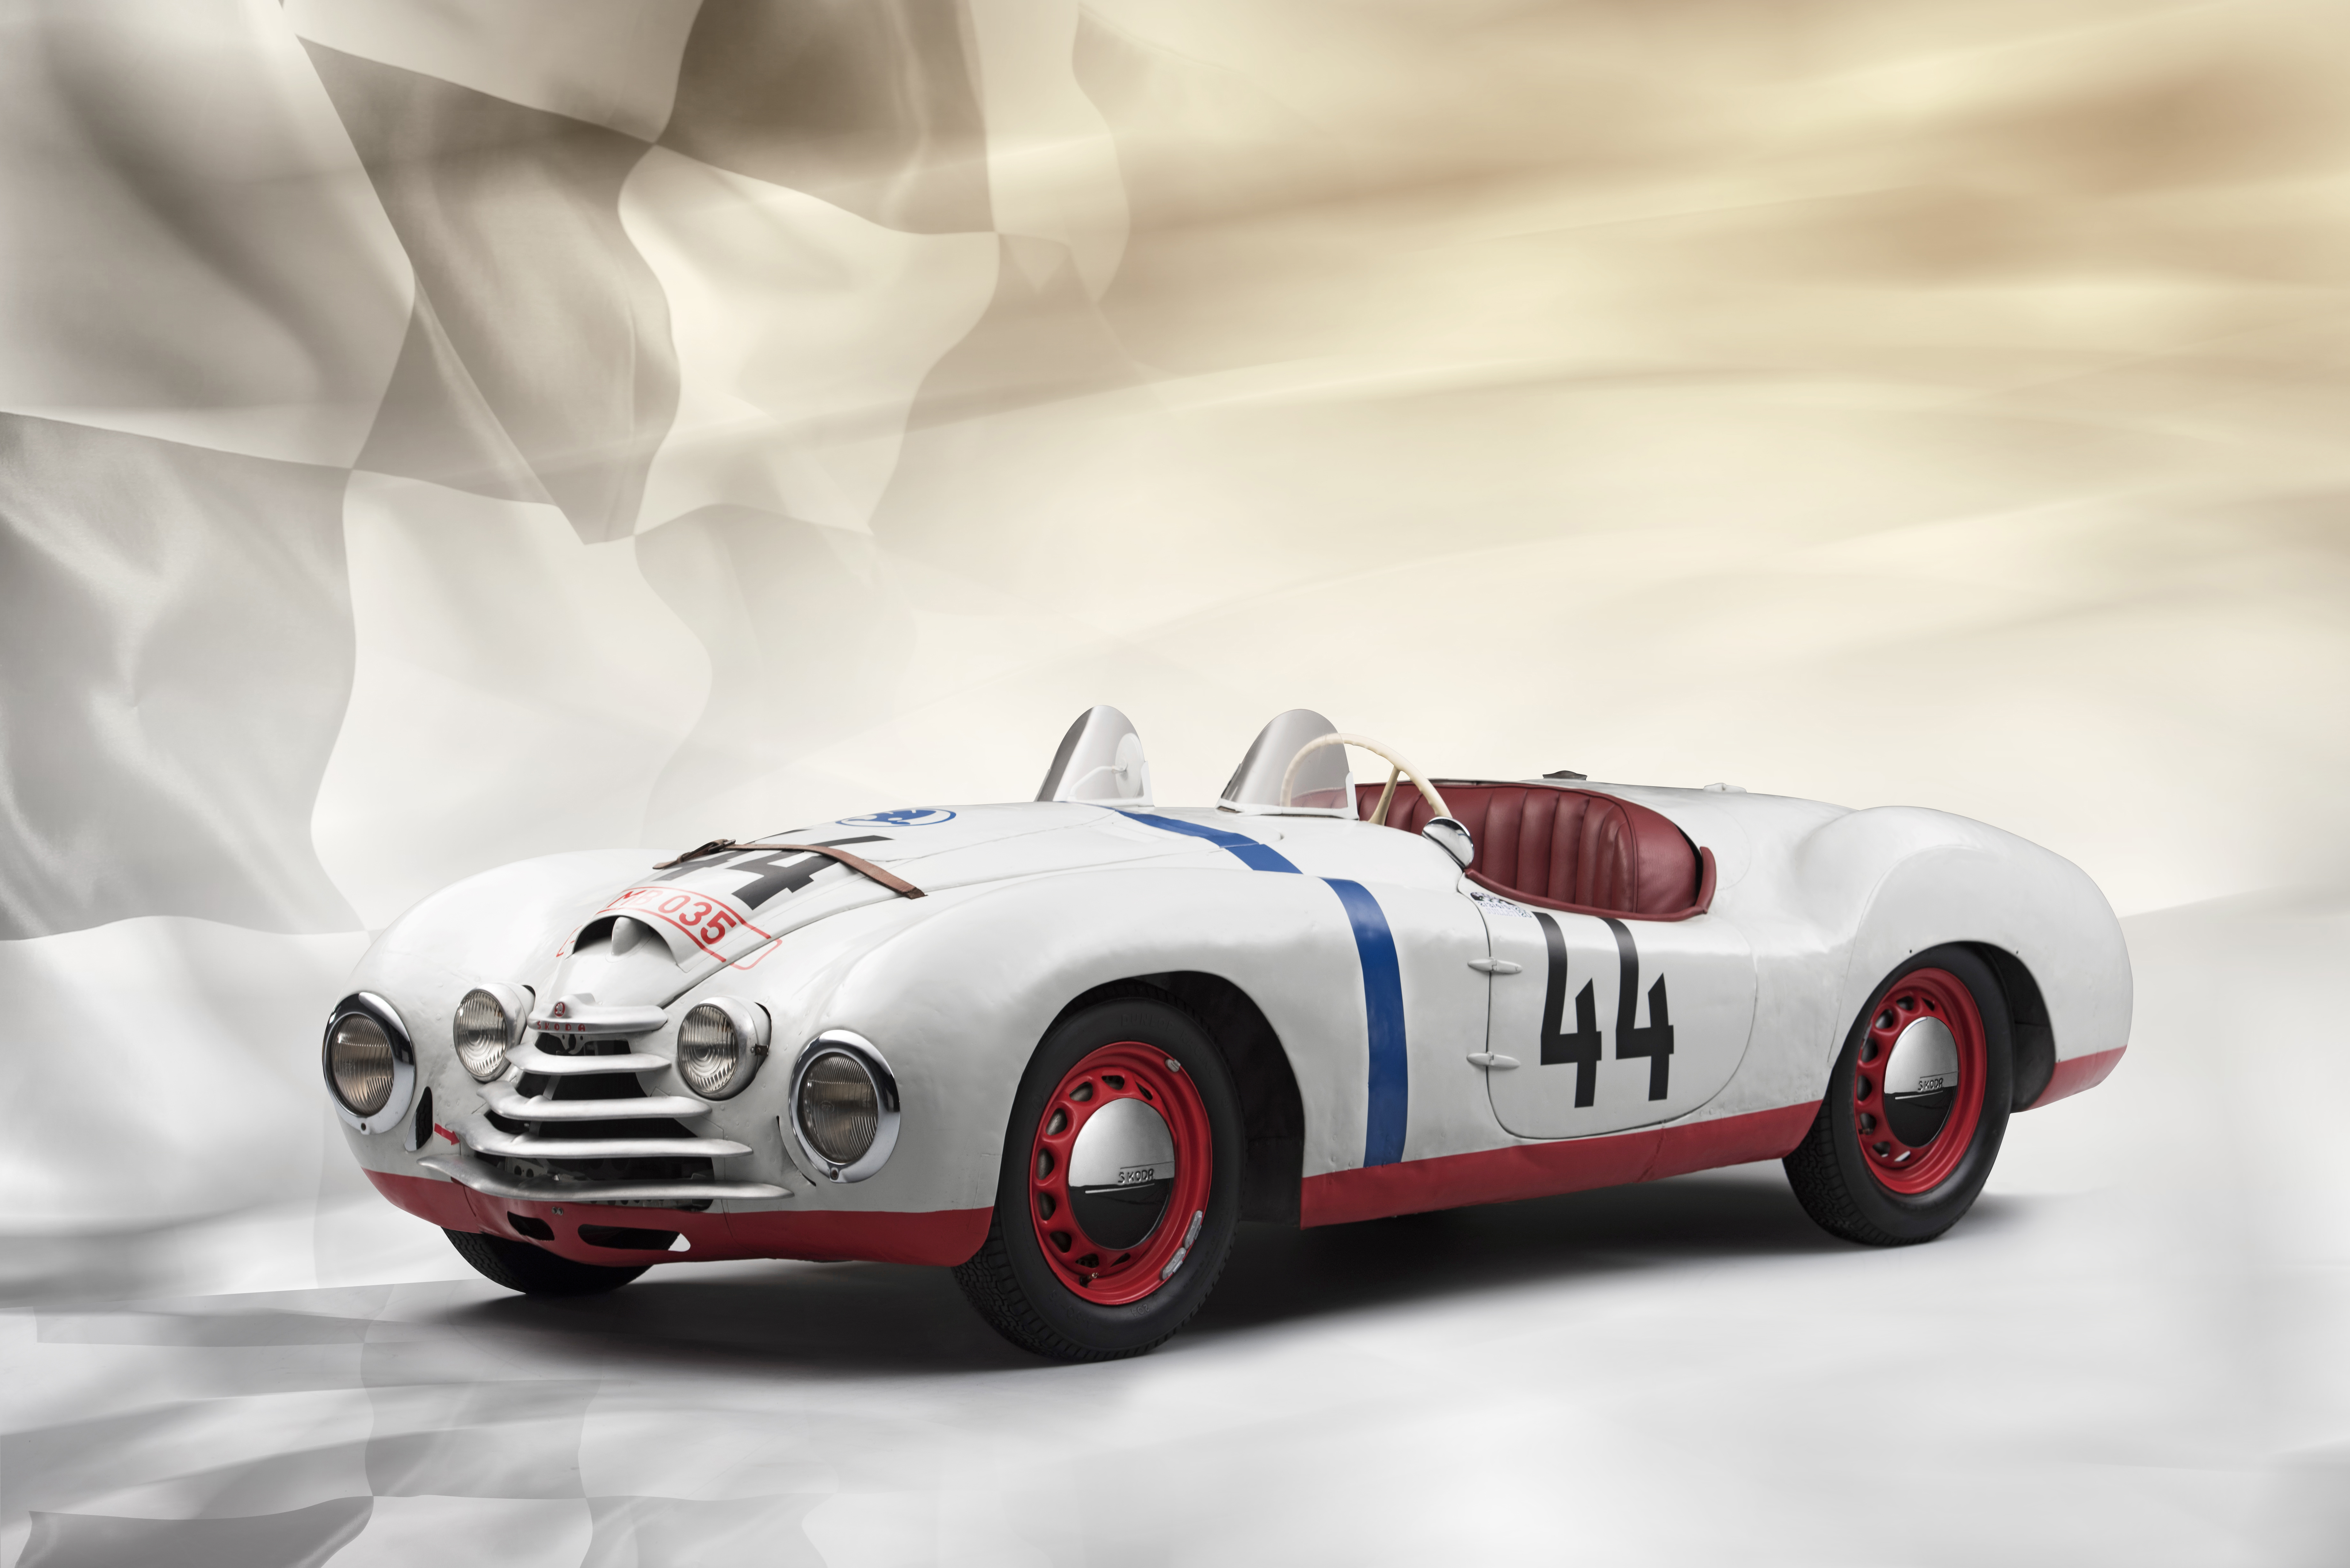 70 years ago today: SKODA's only start in the famous 24 Hours of Le Mans - Image 3